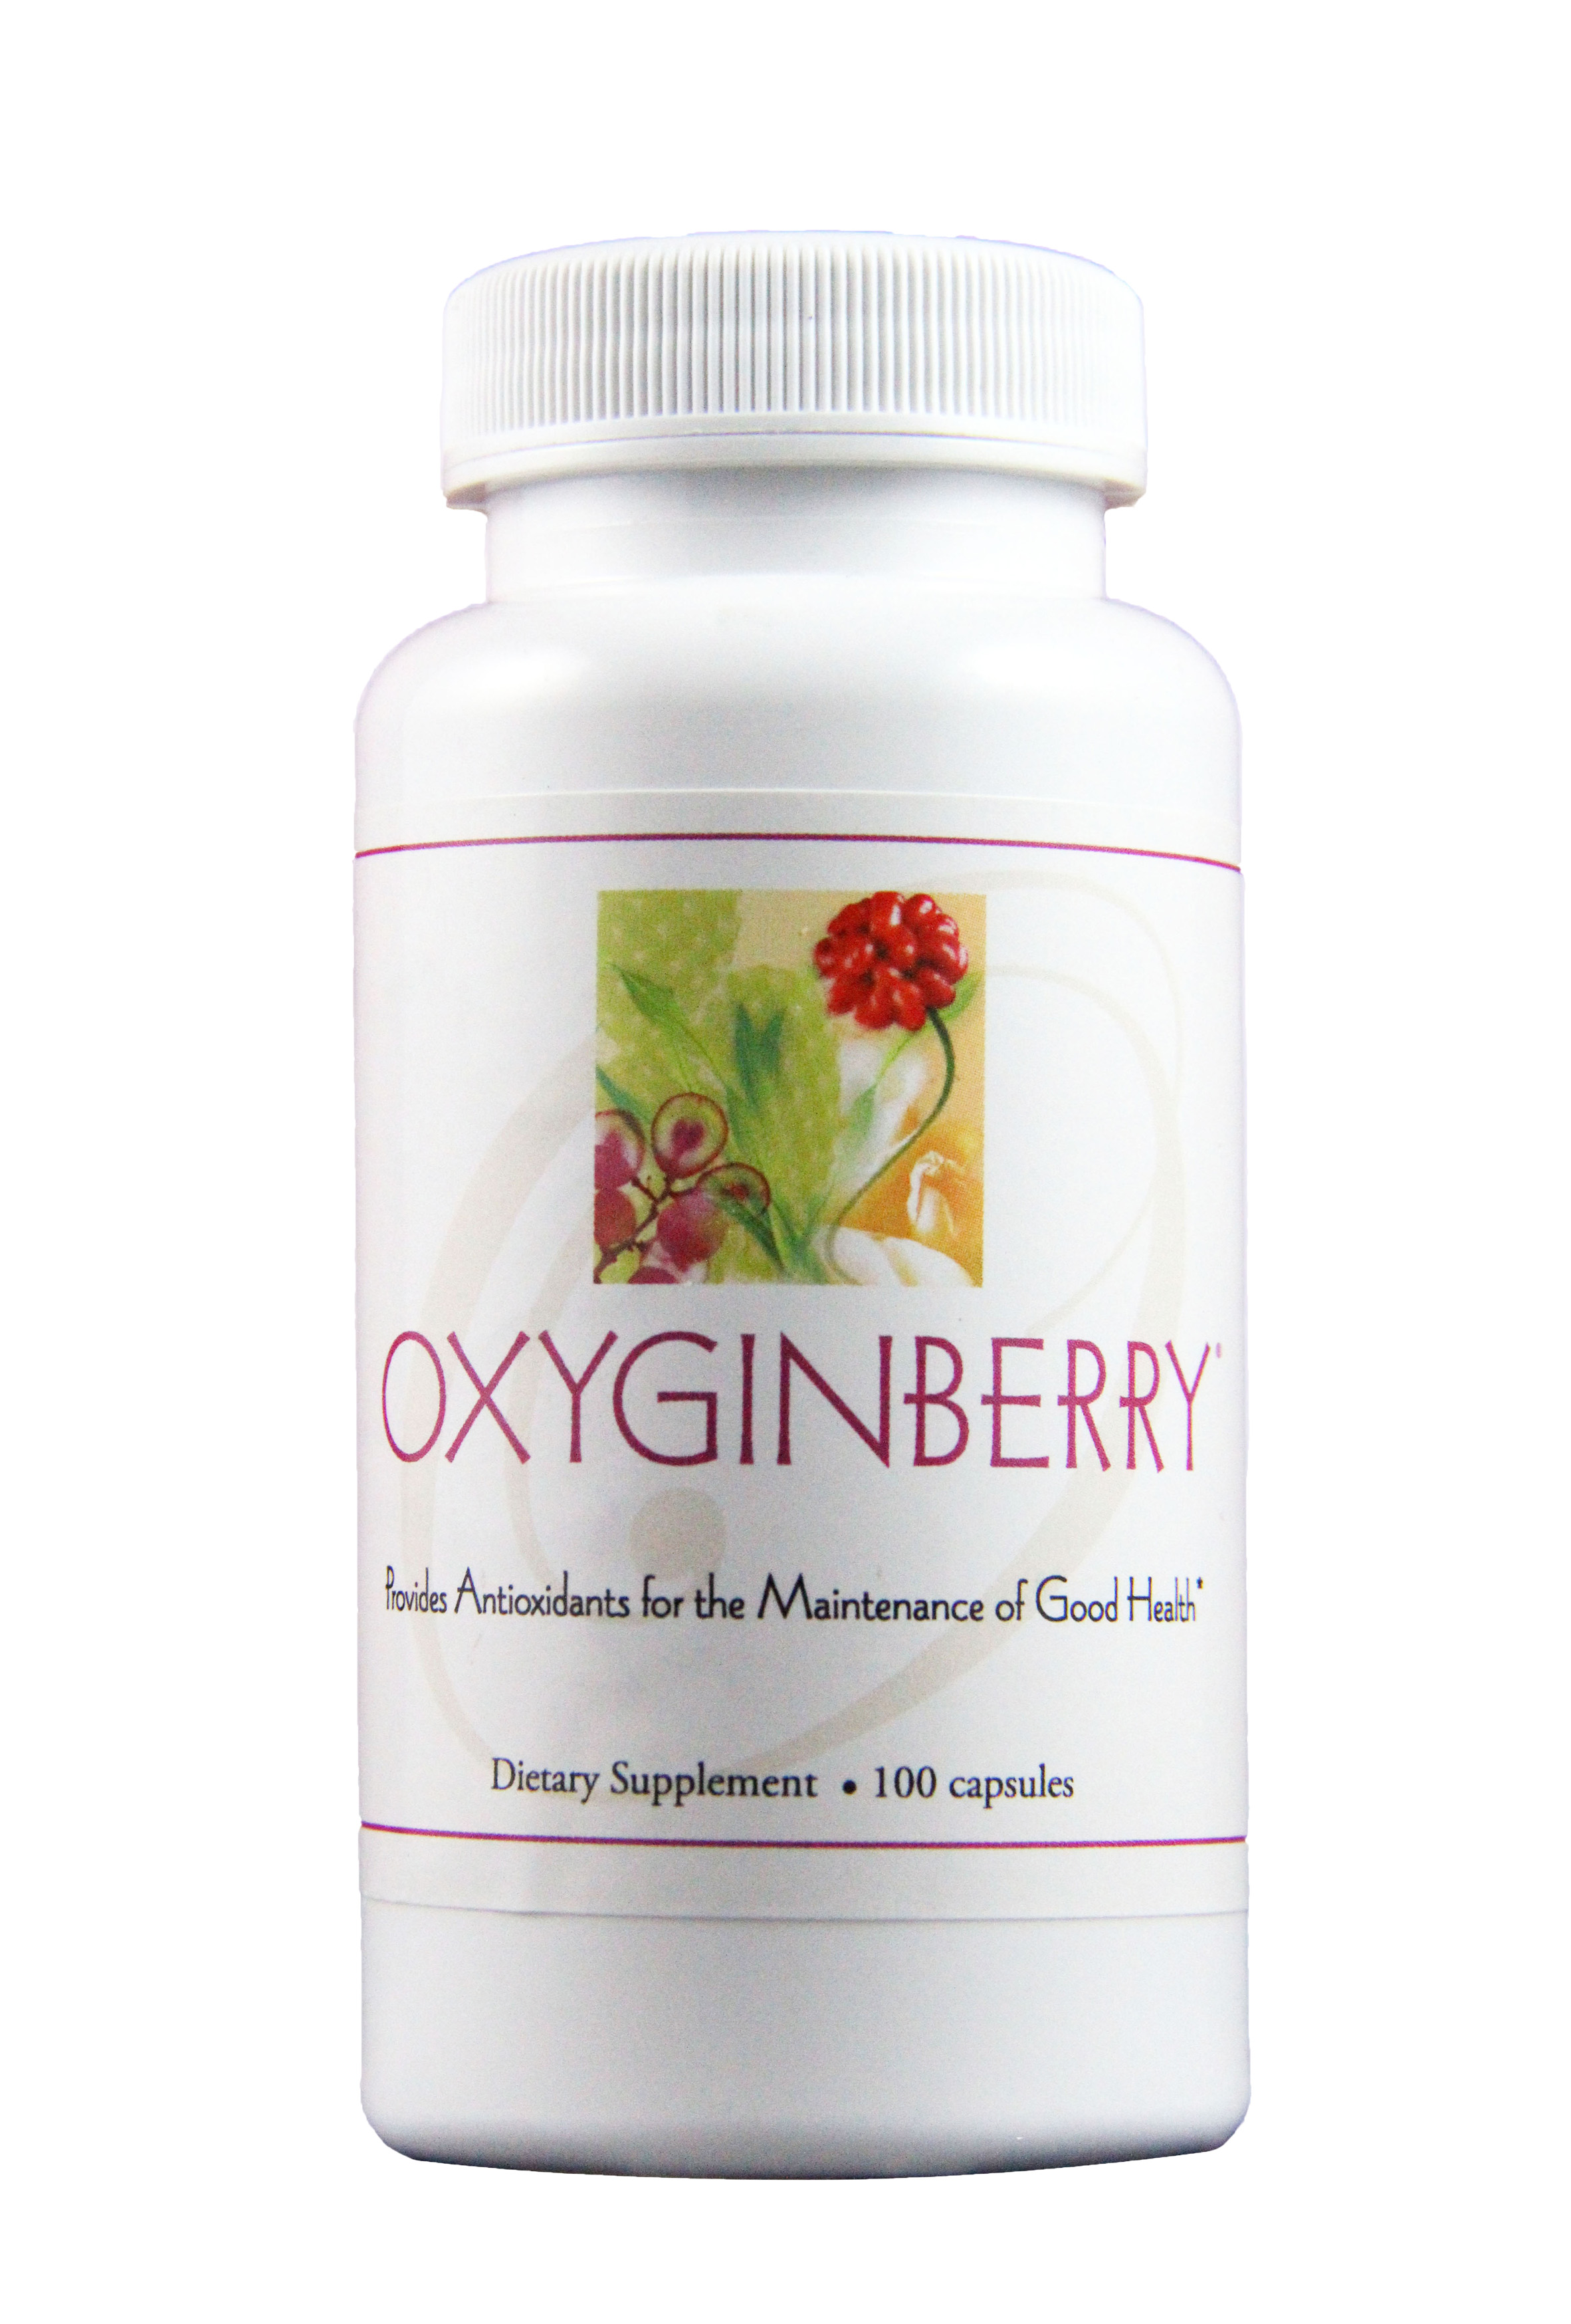 oxyginberry - Beautiful skin requires nourishment from the inside out. Oxyginberry capsules are carefully formulated with precious botanicals for optimal nourishment to help skin radiate health and beauty. Suitable for daily consumption.*Featured Ingredients: Prickly Pear Cactus Pad & Fruit, Panax Ginseng, Seaweed, Rose, Grape seed200 capsules–2 bottles| Code: 30105